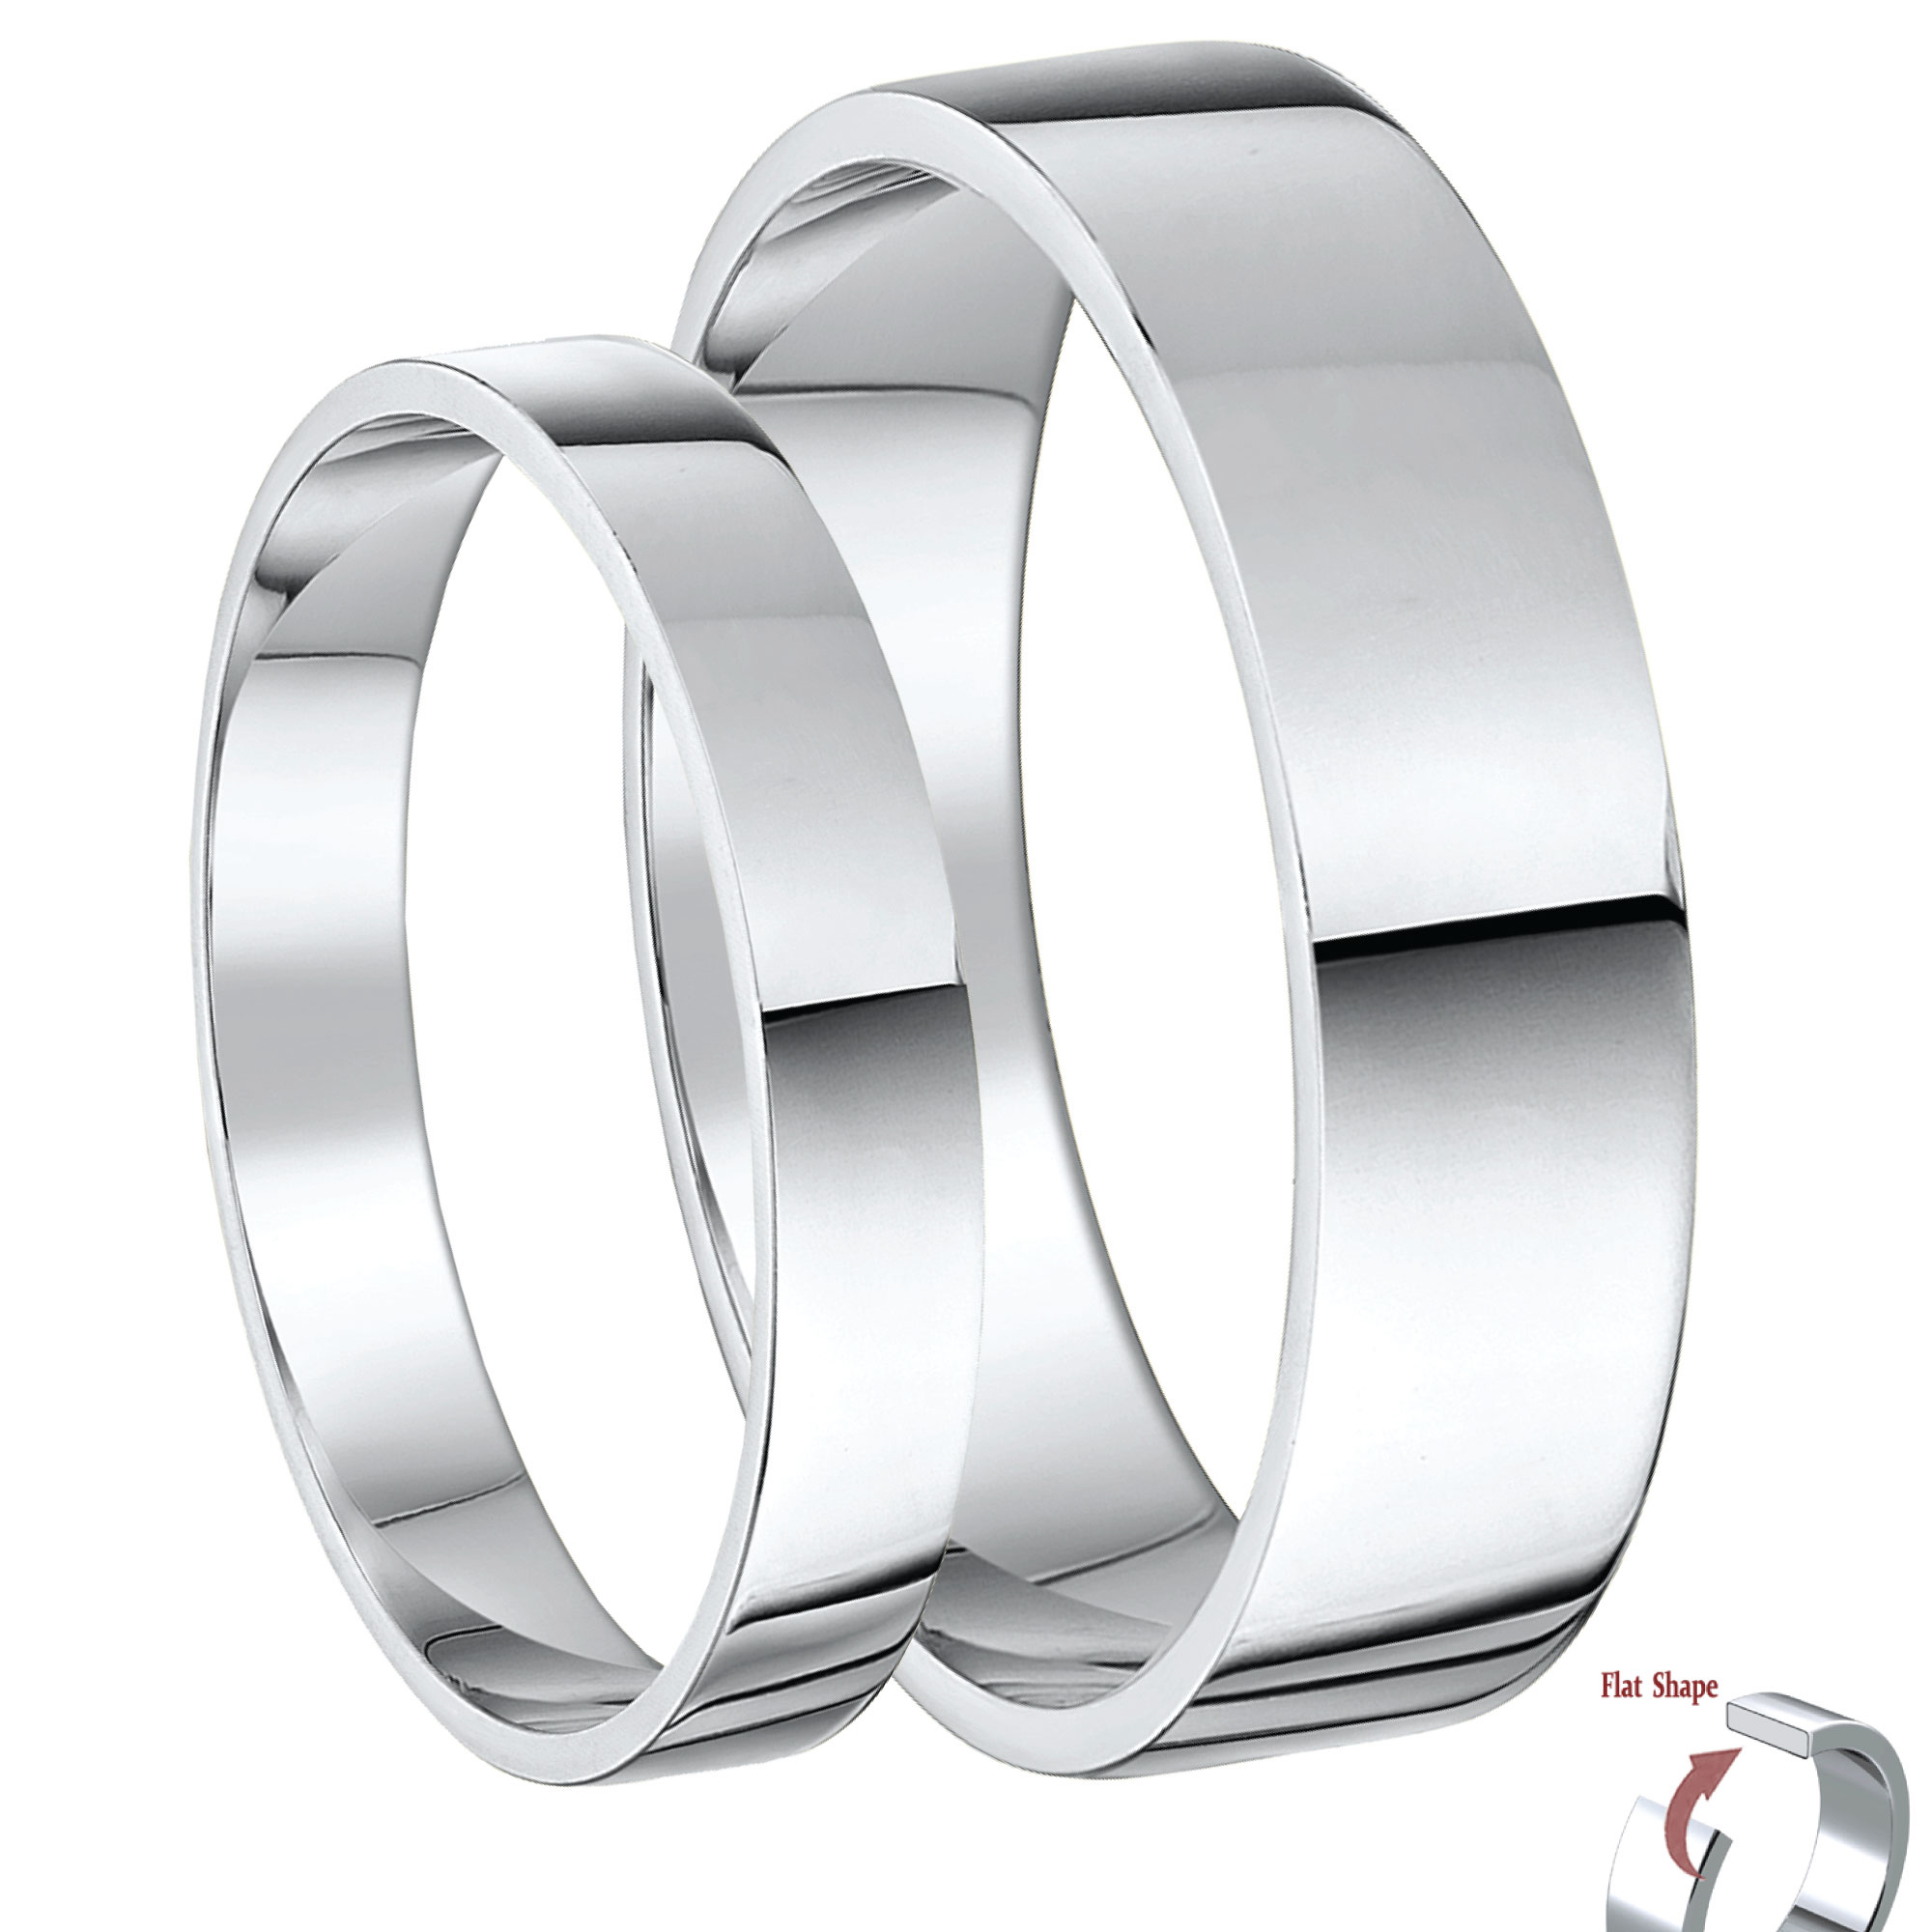 brilliant white bands pair earth matching rings news groom zvretouch on ring now hers his wedding shop